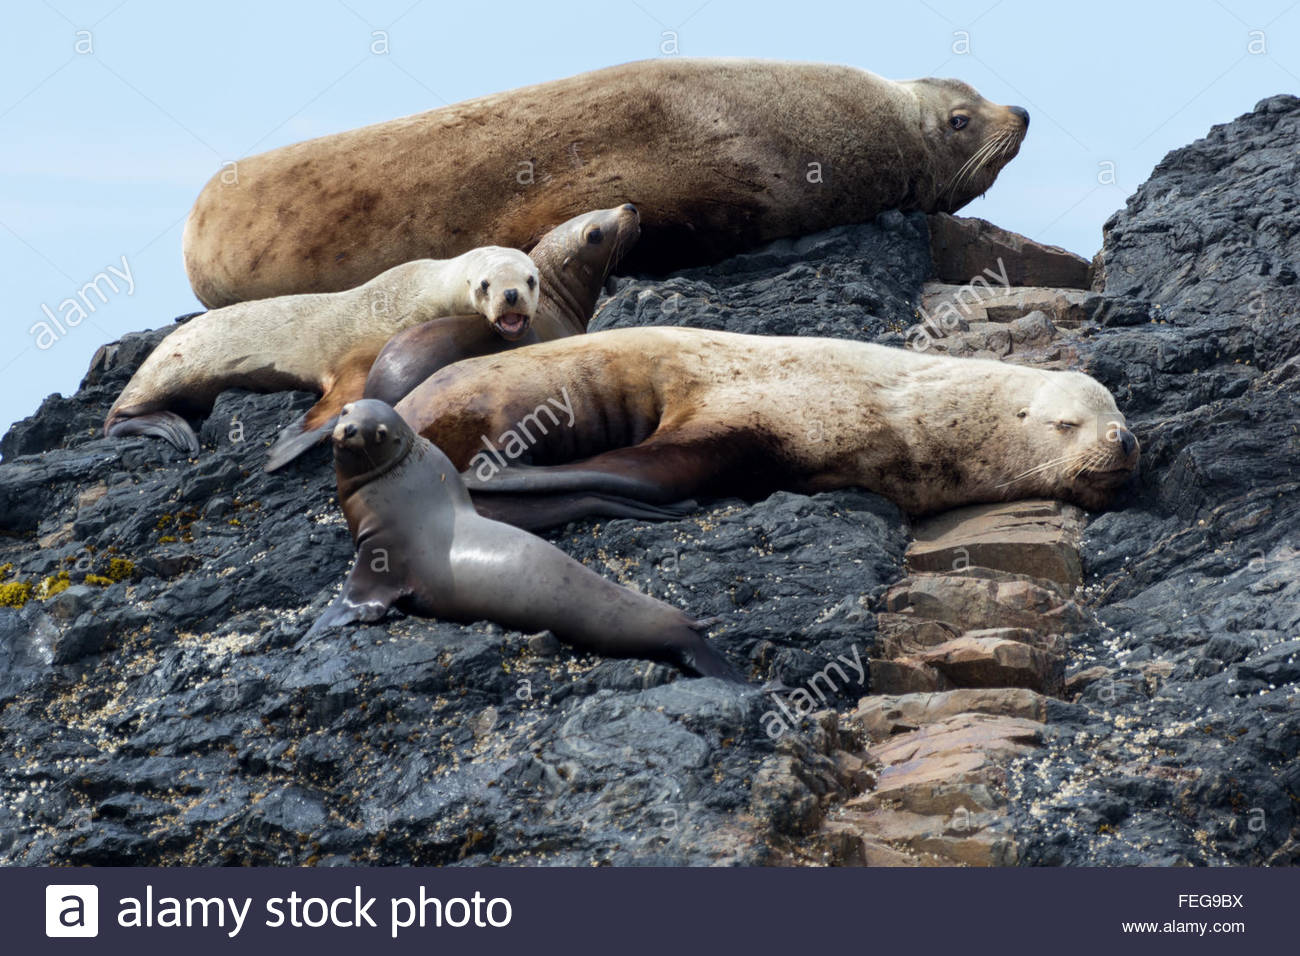 Stellers sealions lounging about on the rocks of a Southeast Alaska island in the summer. - Stock Image